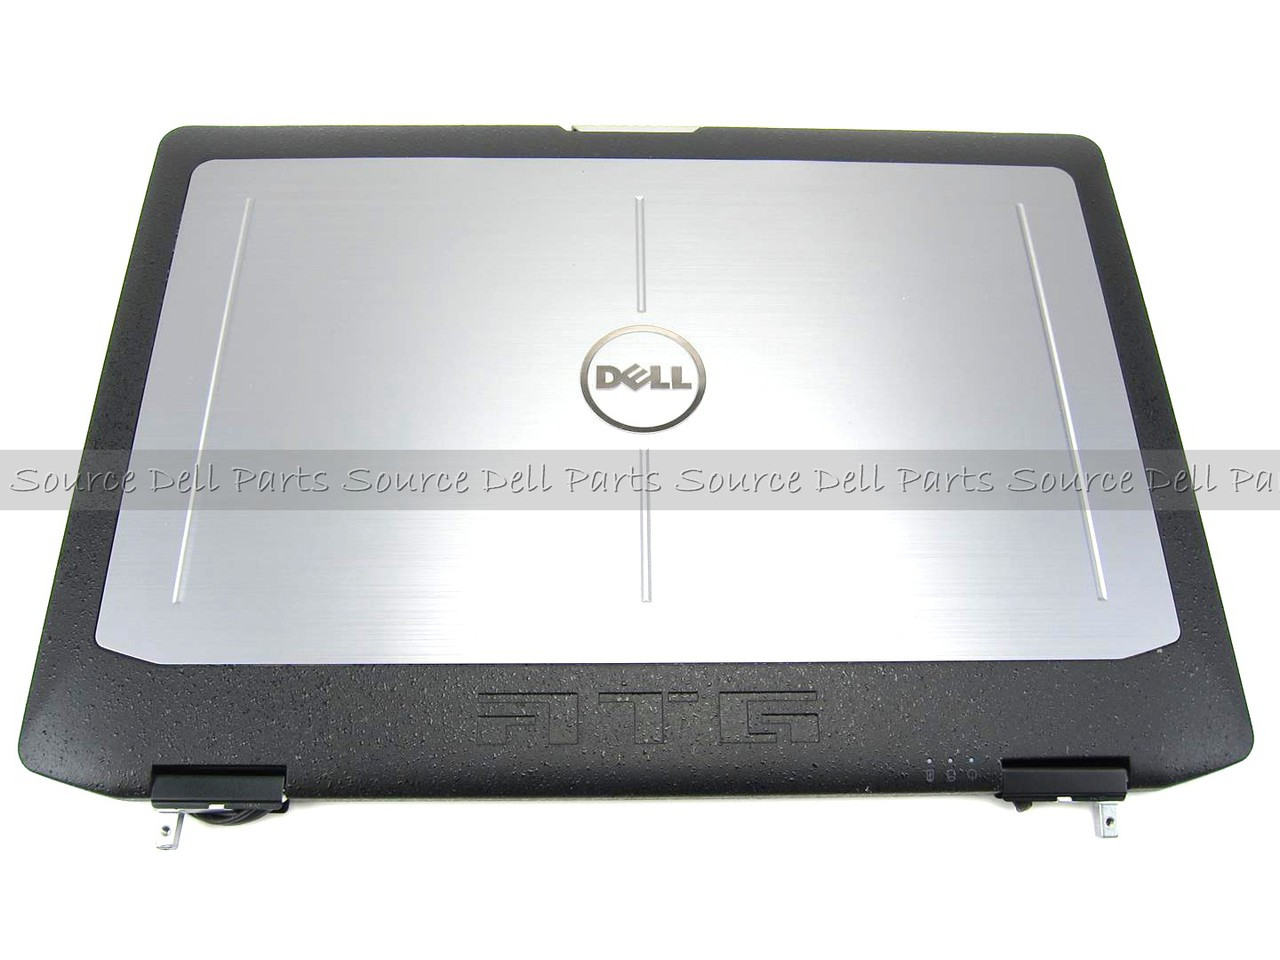 Dell Latitude E6430 ATG Lcd Back Cover with Hinges For Touch Screen  - 6W61R  (B)